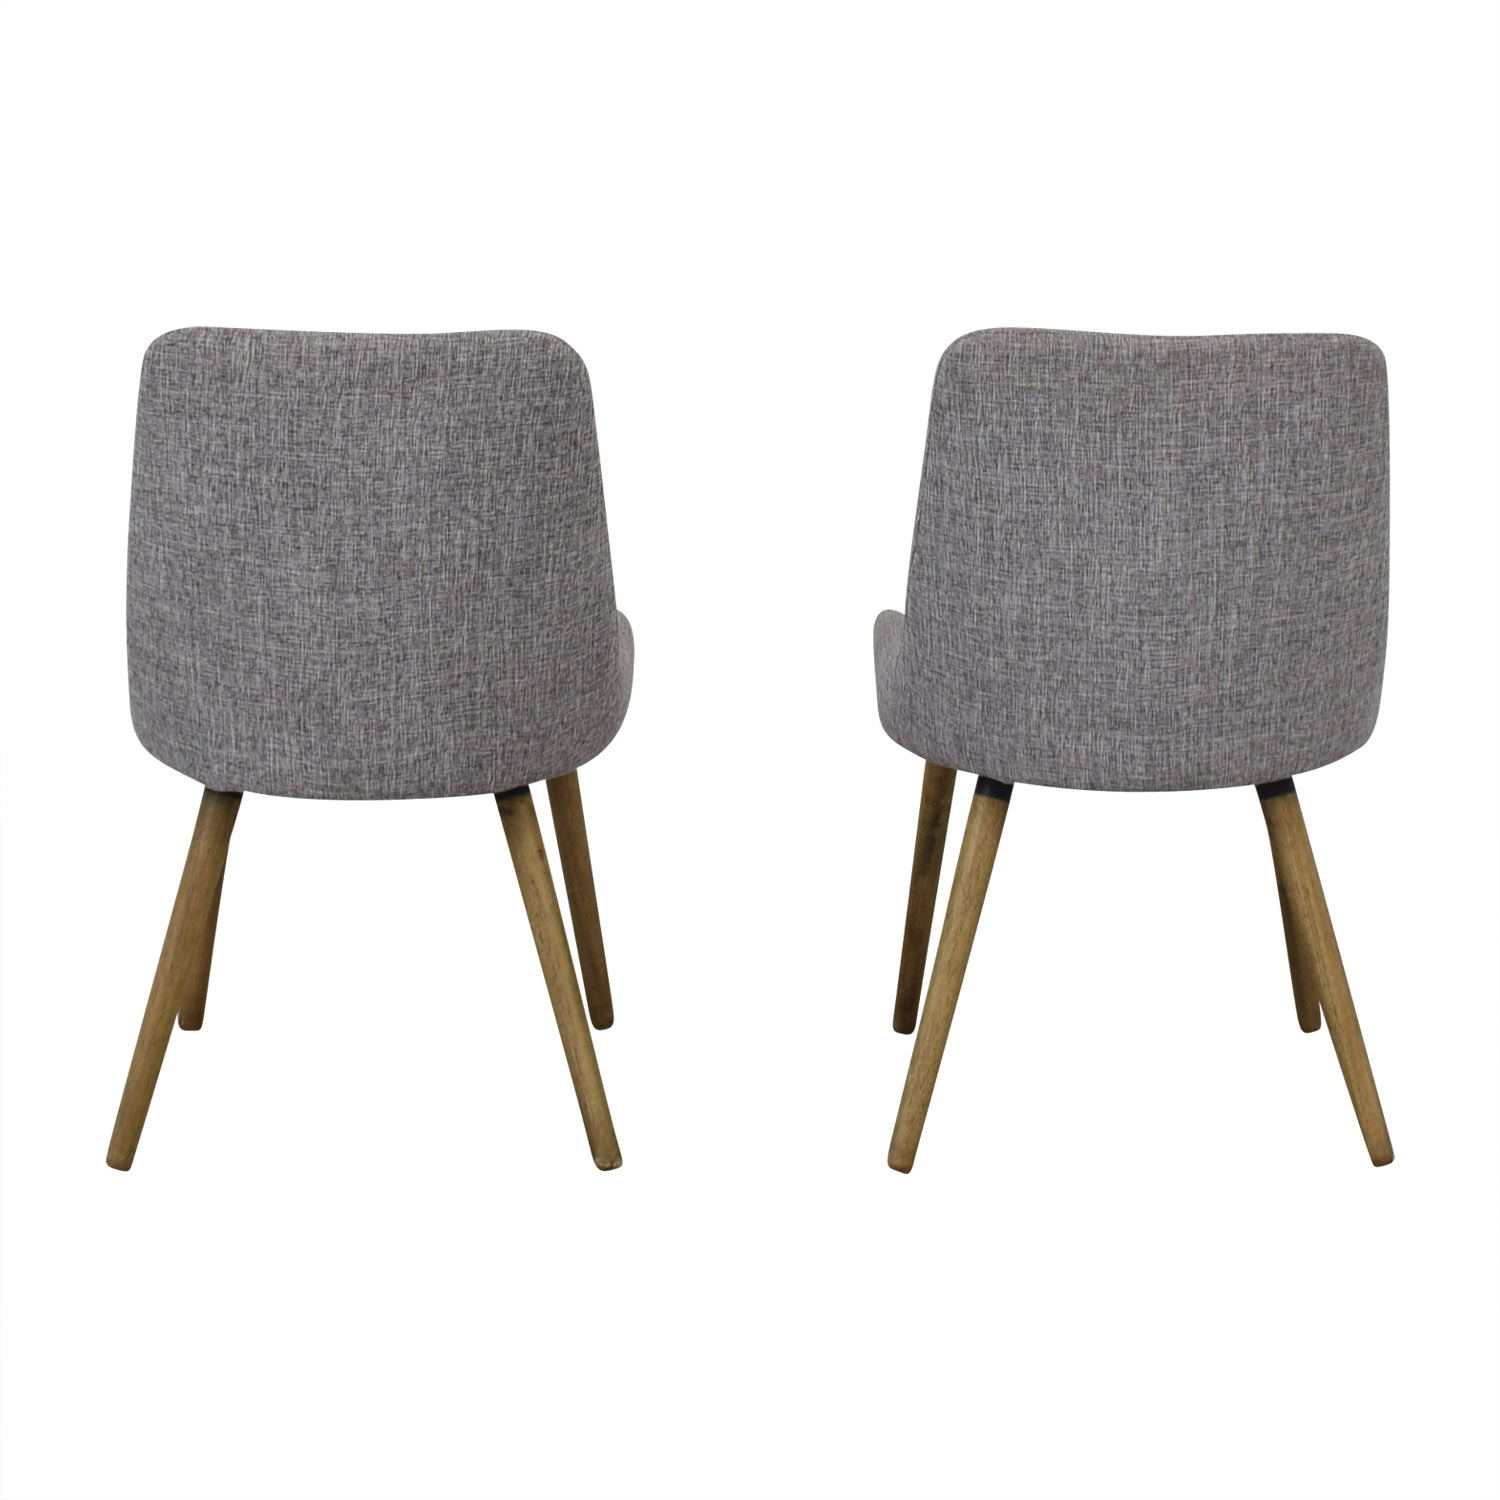 West Elm West Elm Mid-Century Upholstered Dining Chairs Grey